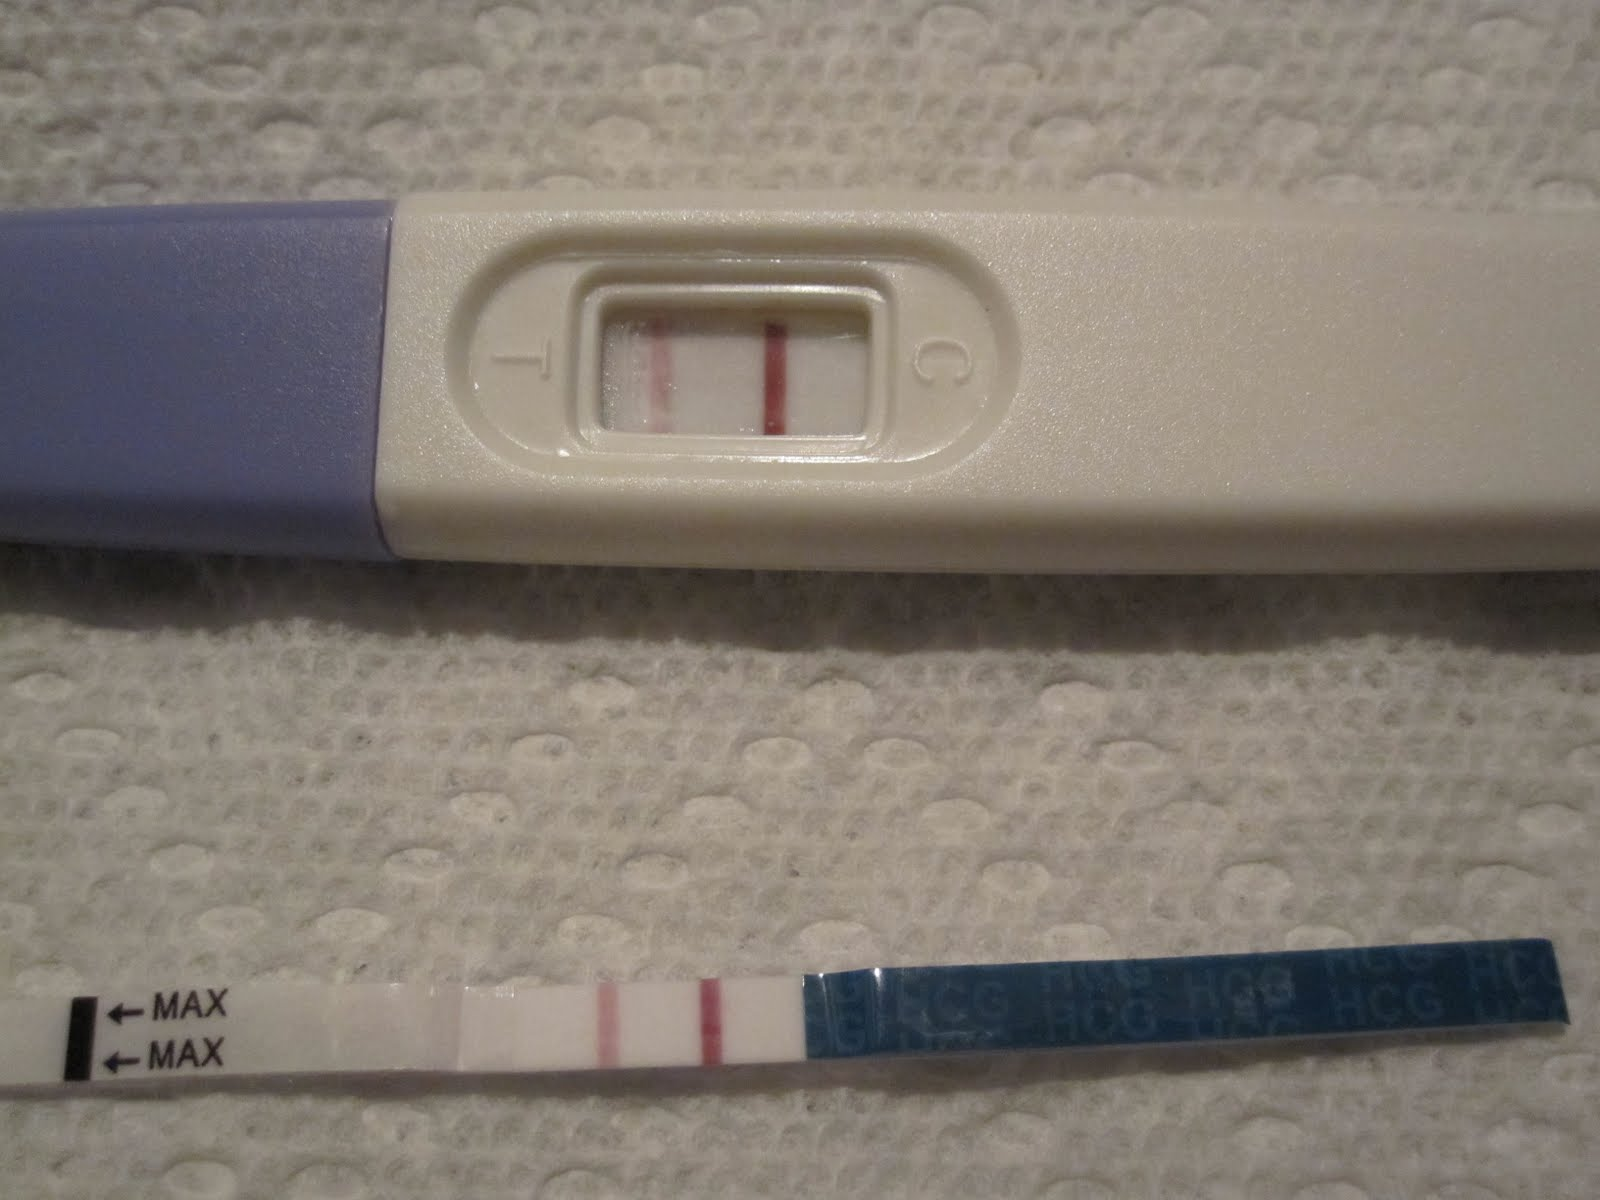 Photos of positive home pregnancy test Costa Rica - Travel, Real Estate, Relocation & Business